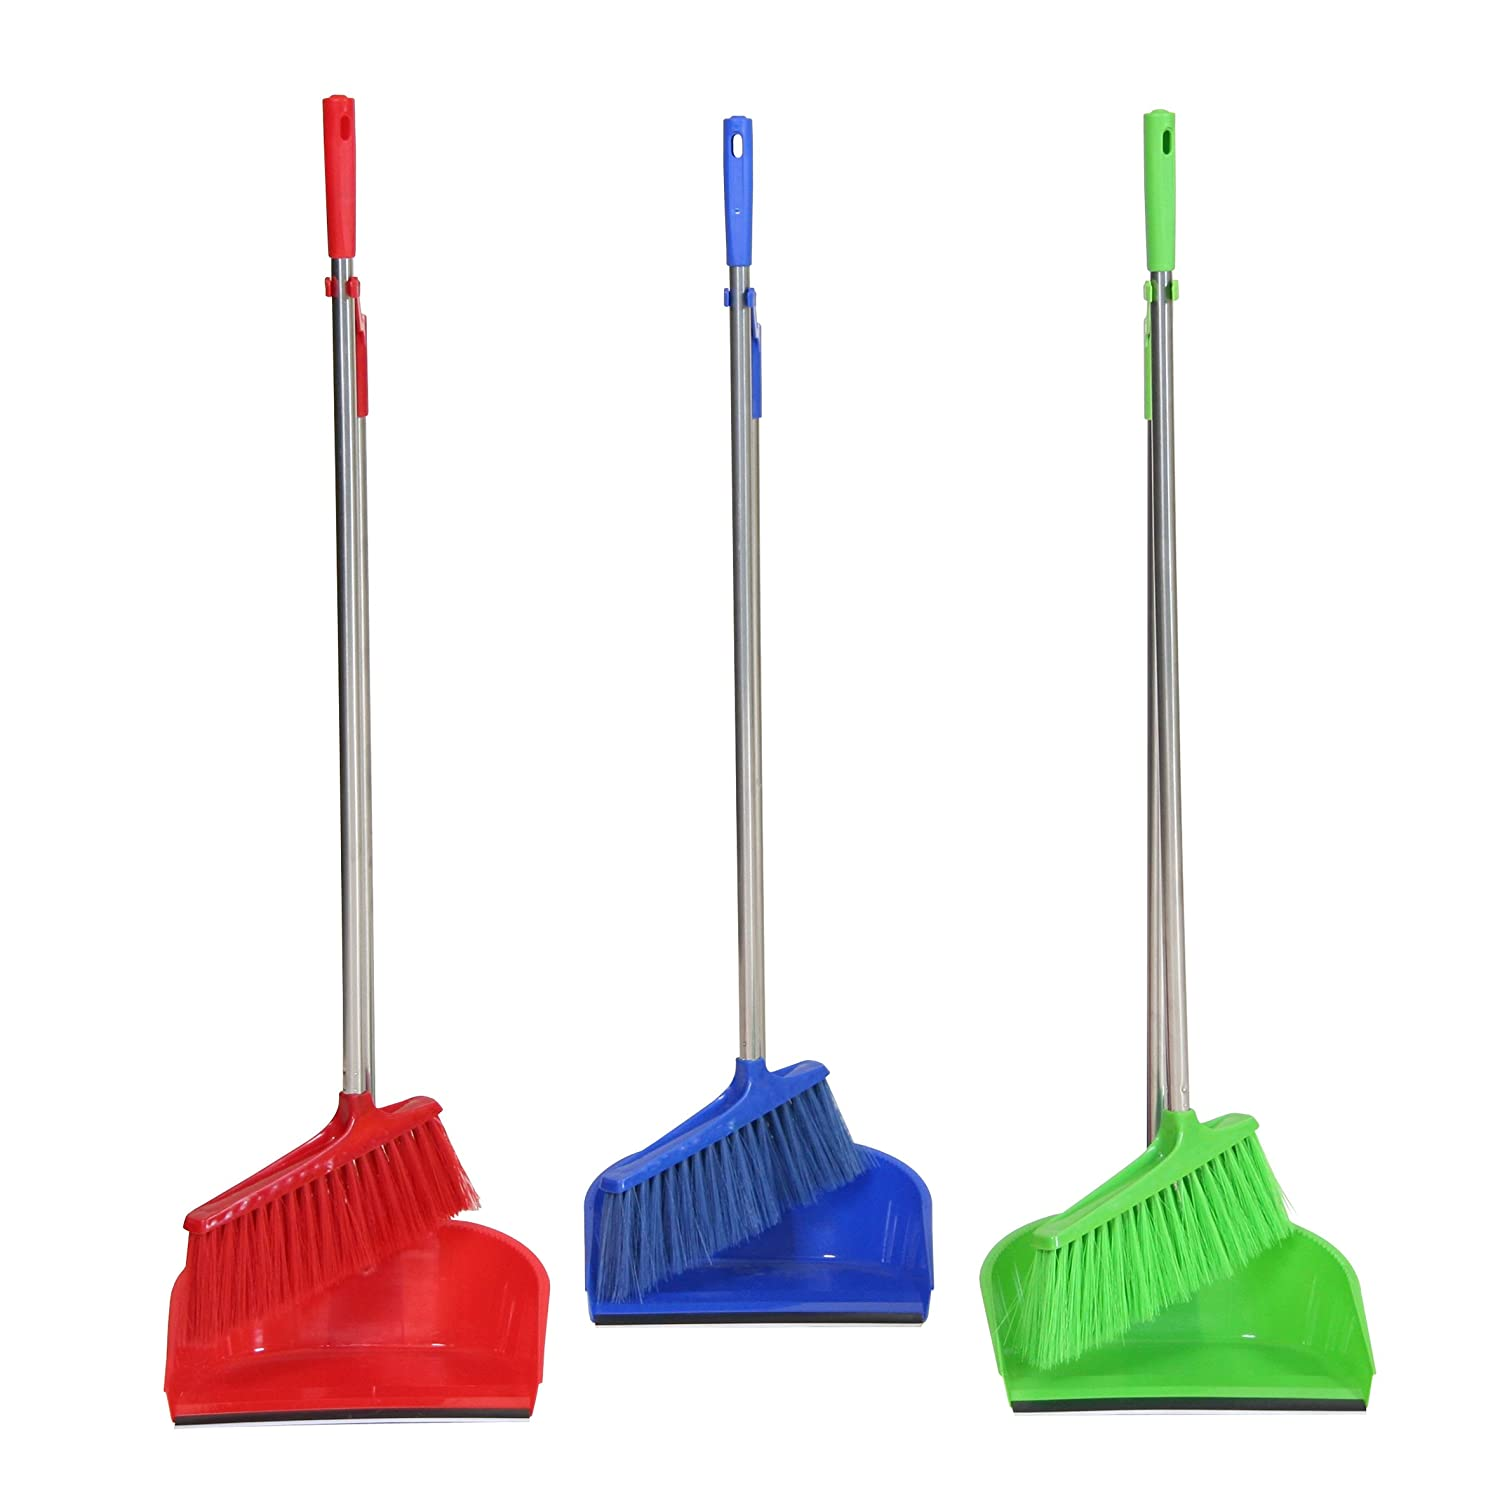 Ribelli 2-piece Sweeping-Set, Long Handled Dustpan and Brush Set, Indoor/Outdoor Standing Soft Bristle Sweeping Broom and Pan Set, 3 Colours